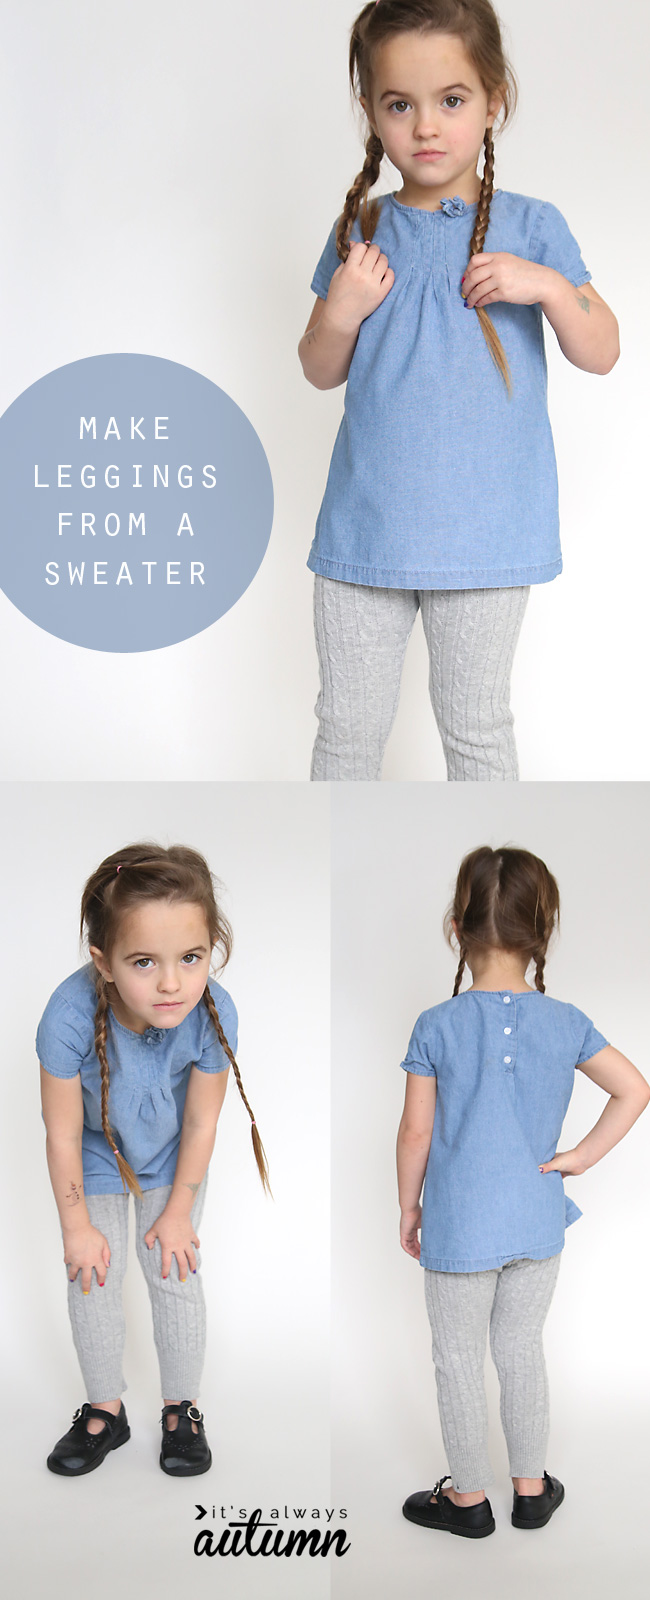 A little girl wearing grey leggings made from a sweater